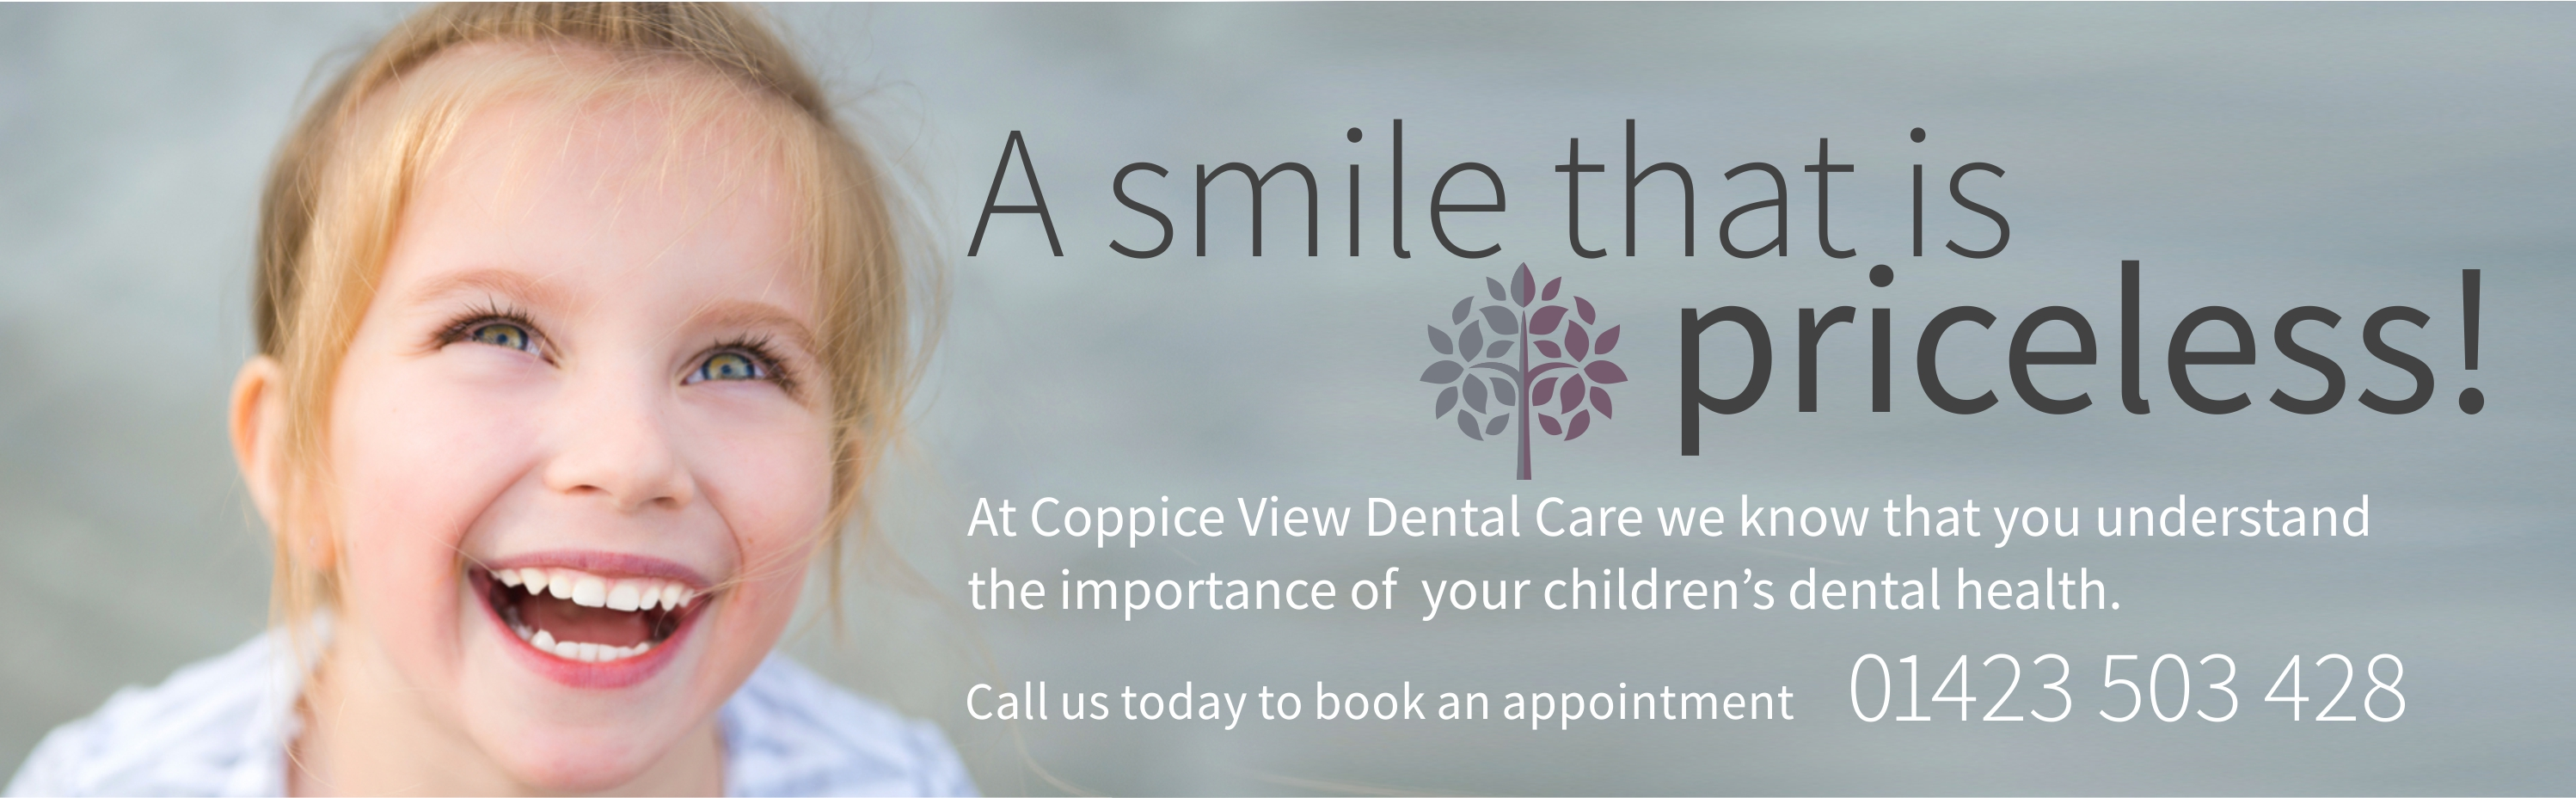 Children's dentistry in Harrogate